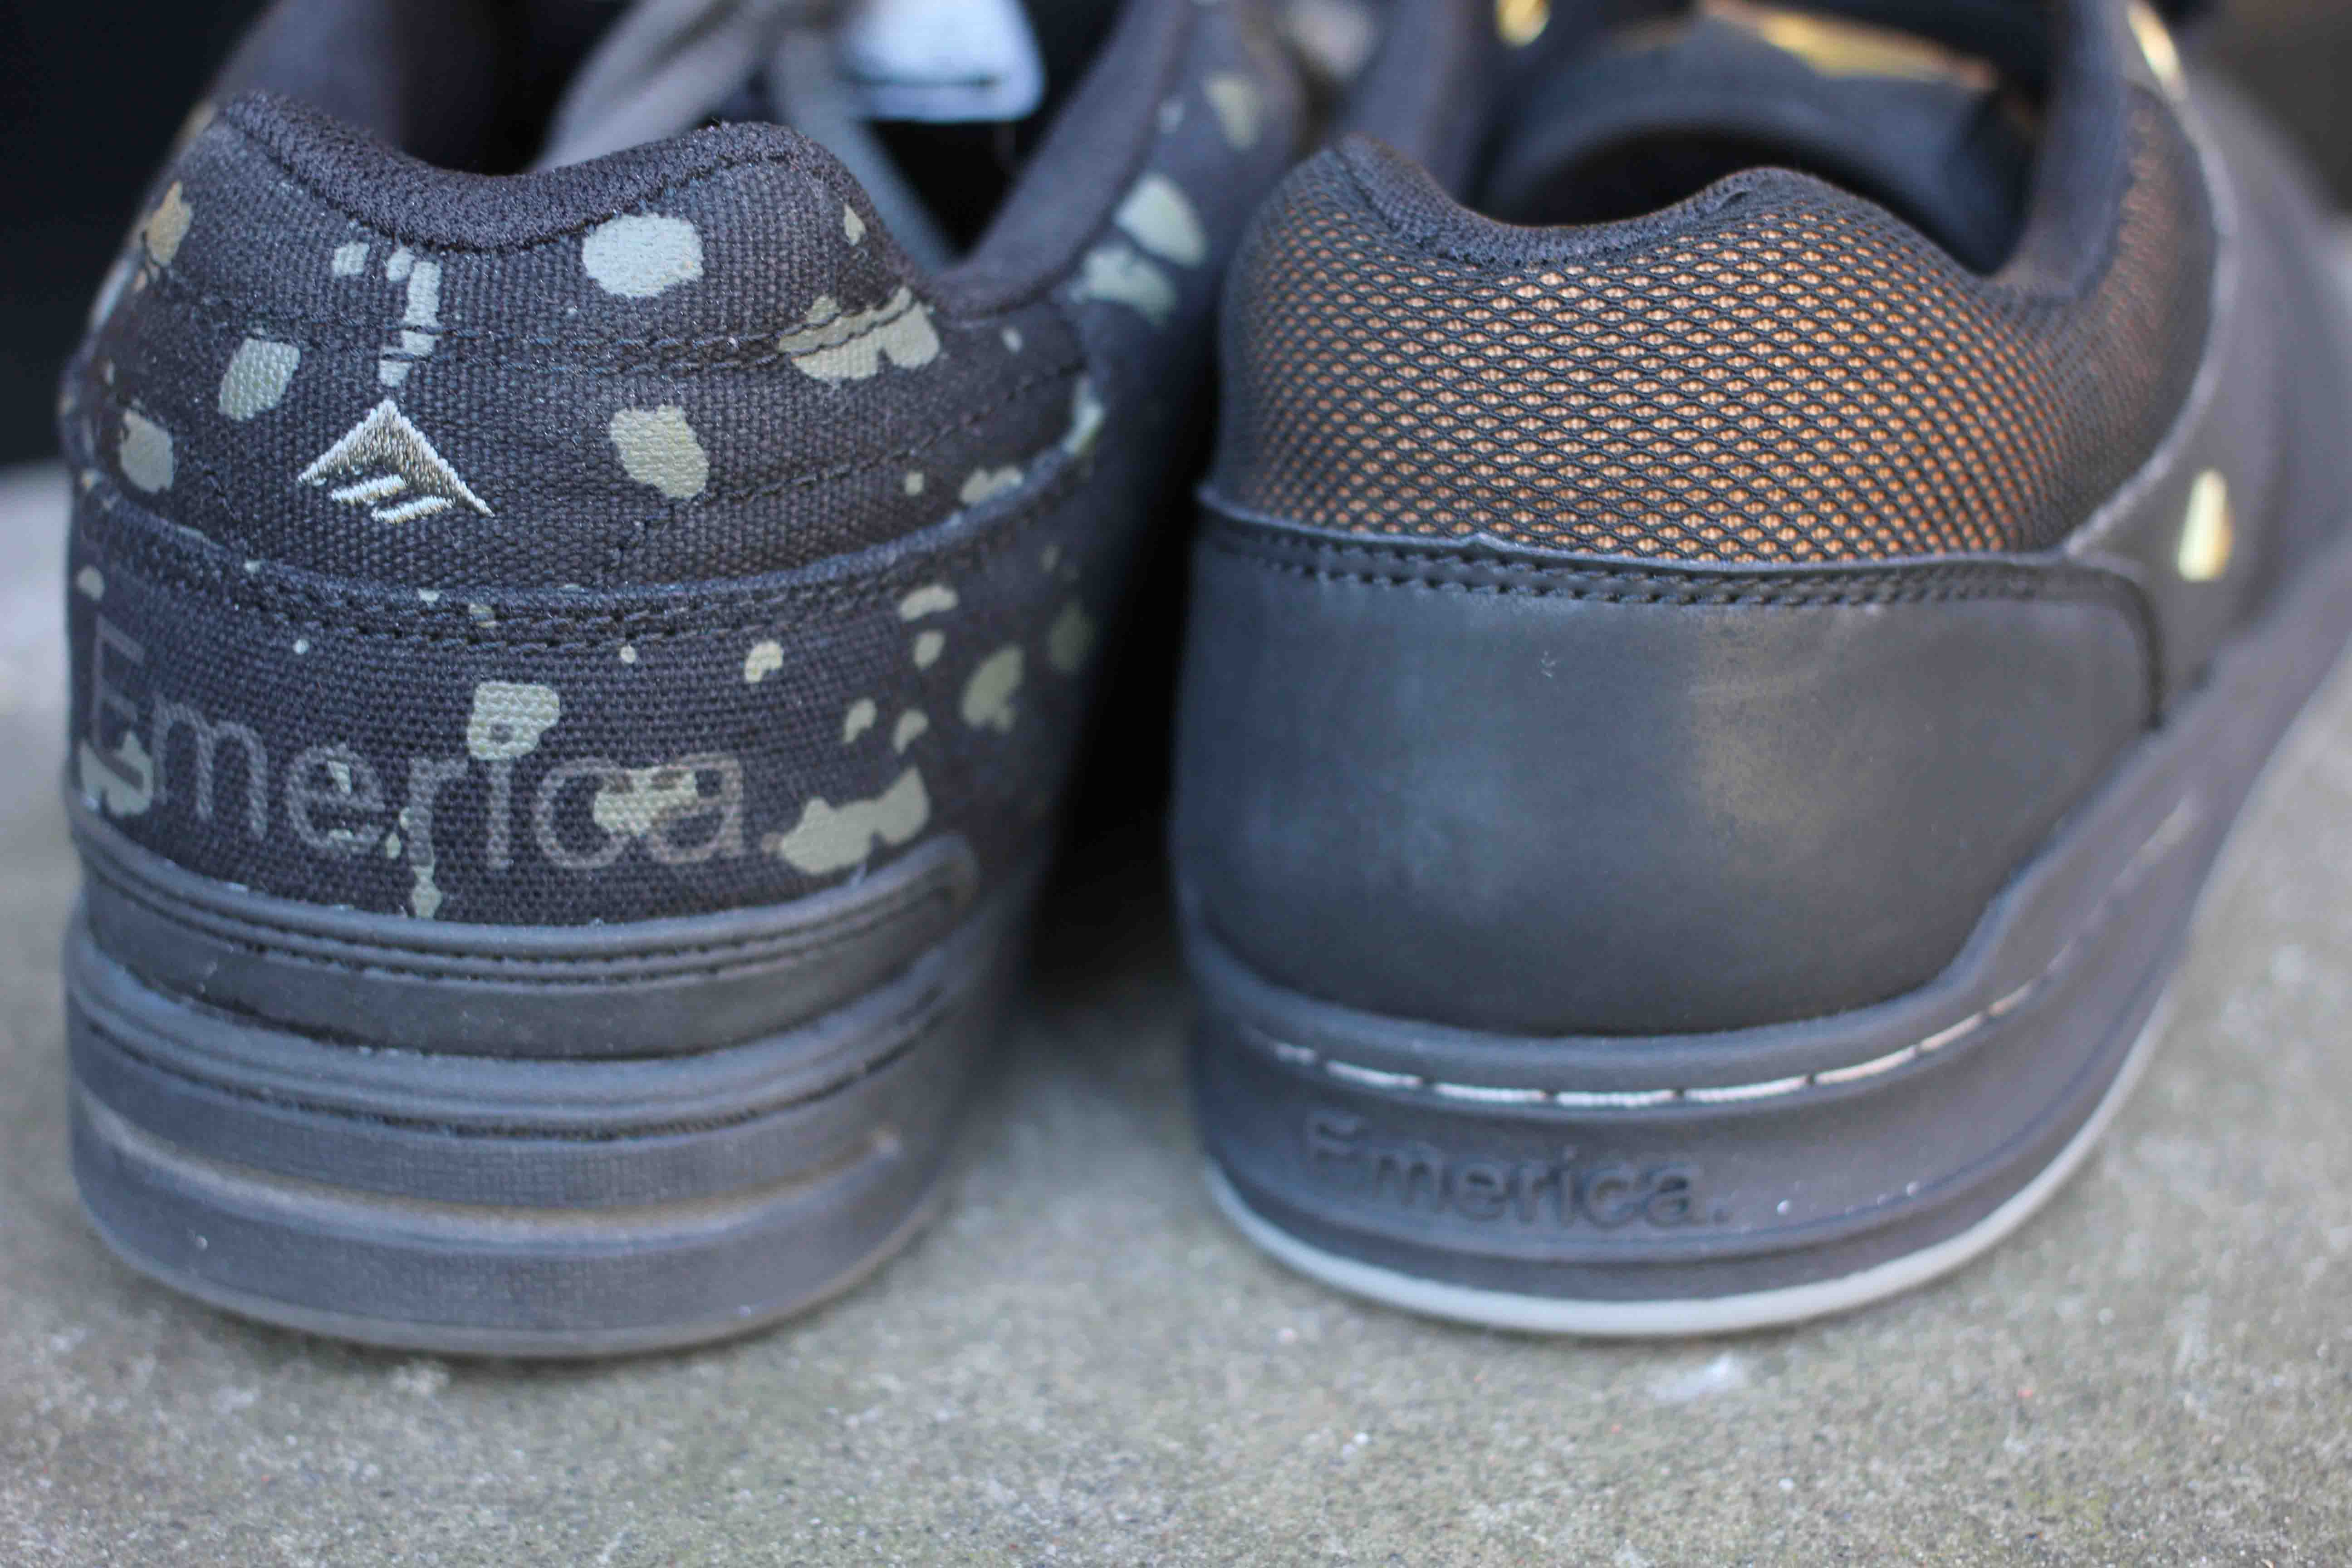 The Heritic 3 and The Heritic X Ed Templeton Vegan Skateboard shoes